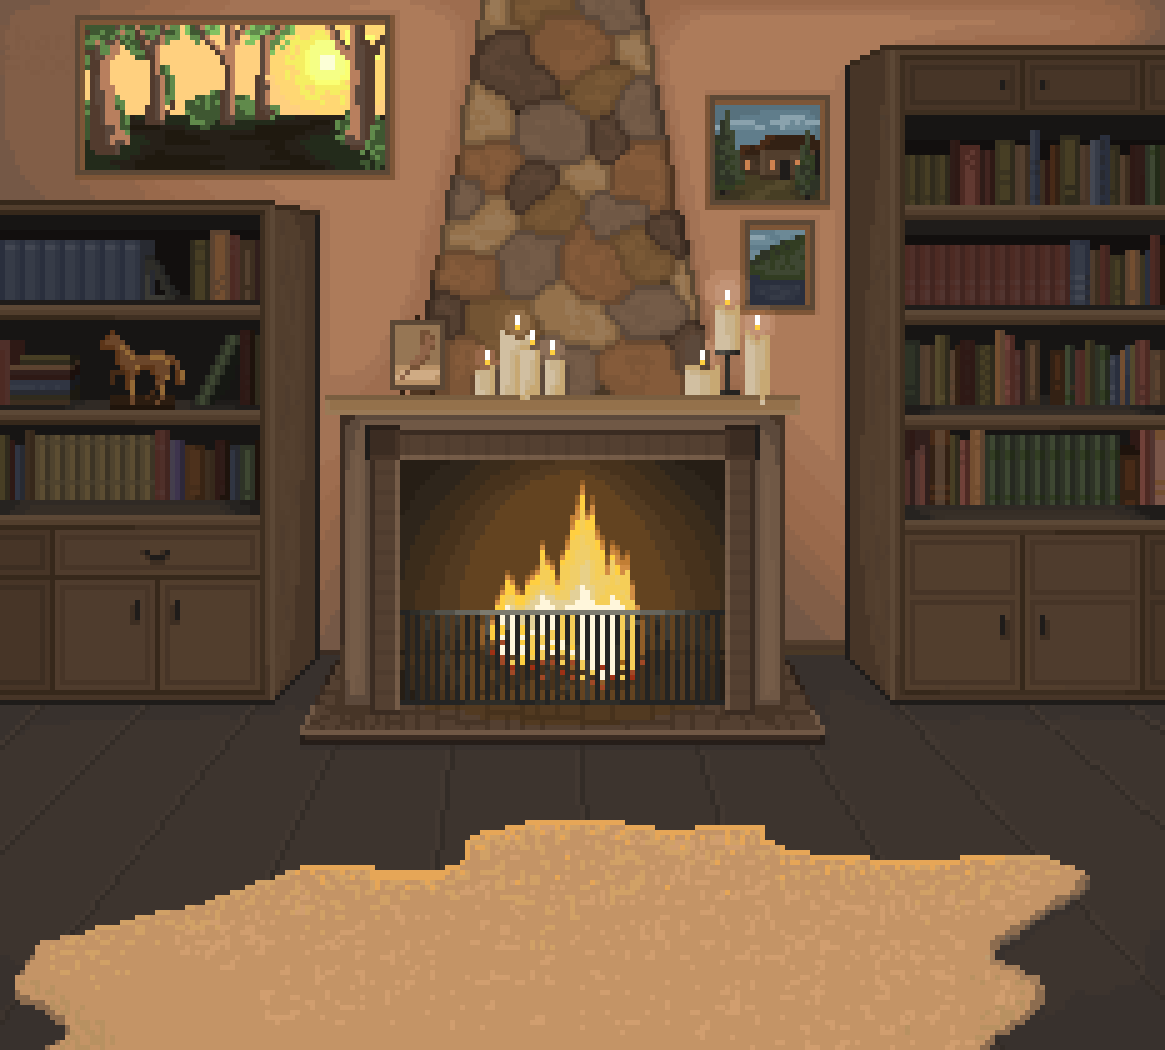 Fireplace by Charly-Fox